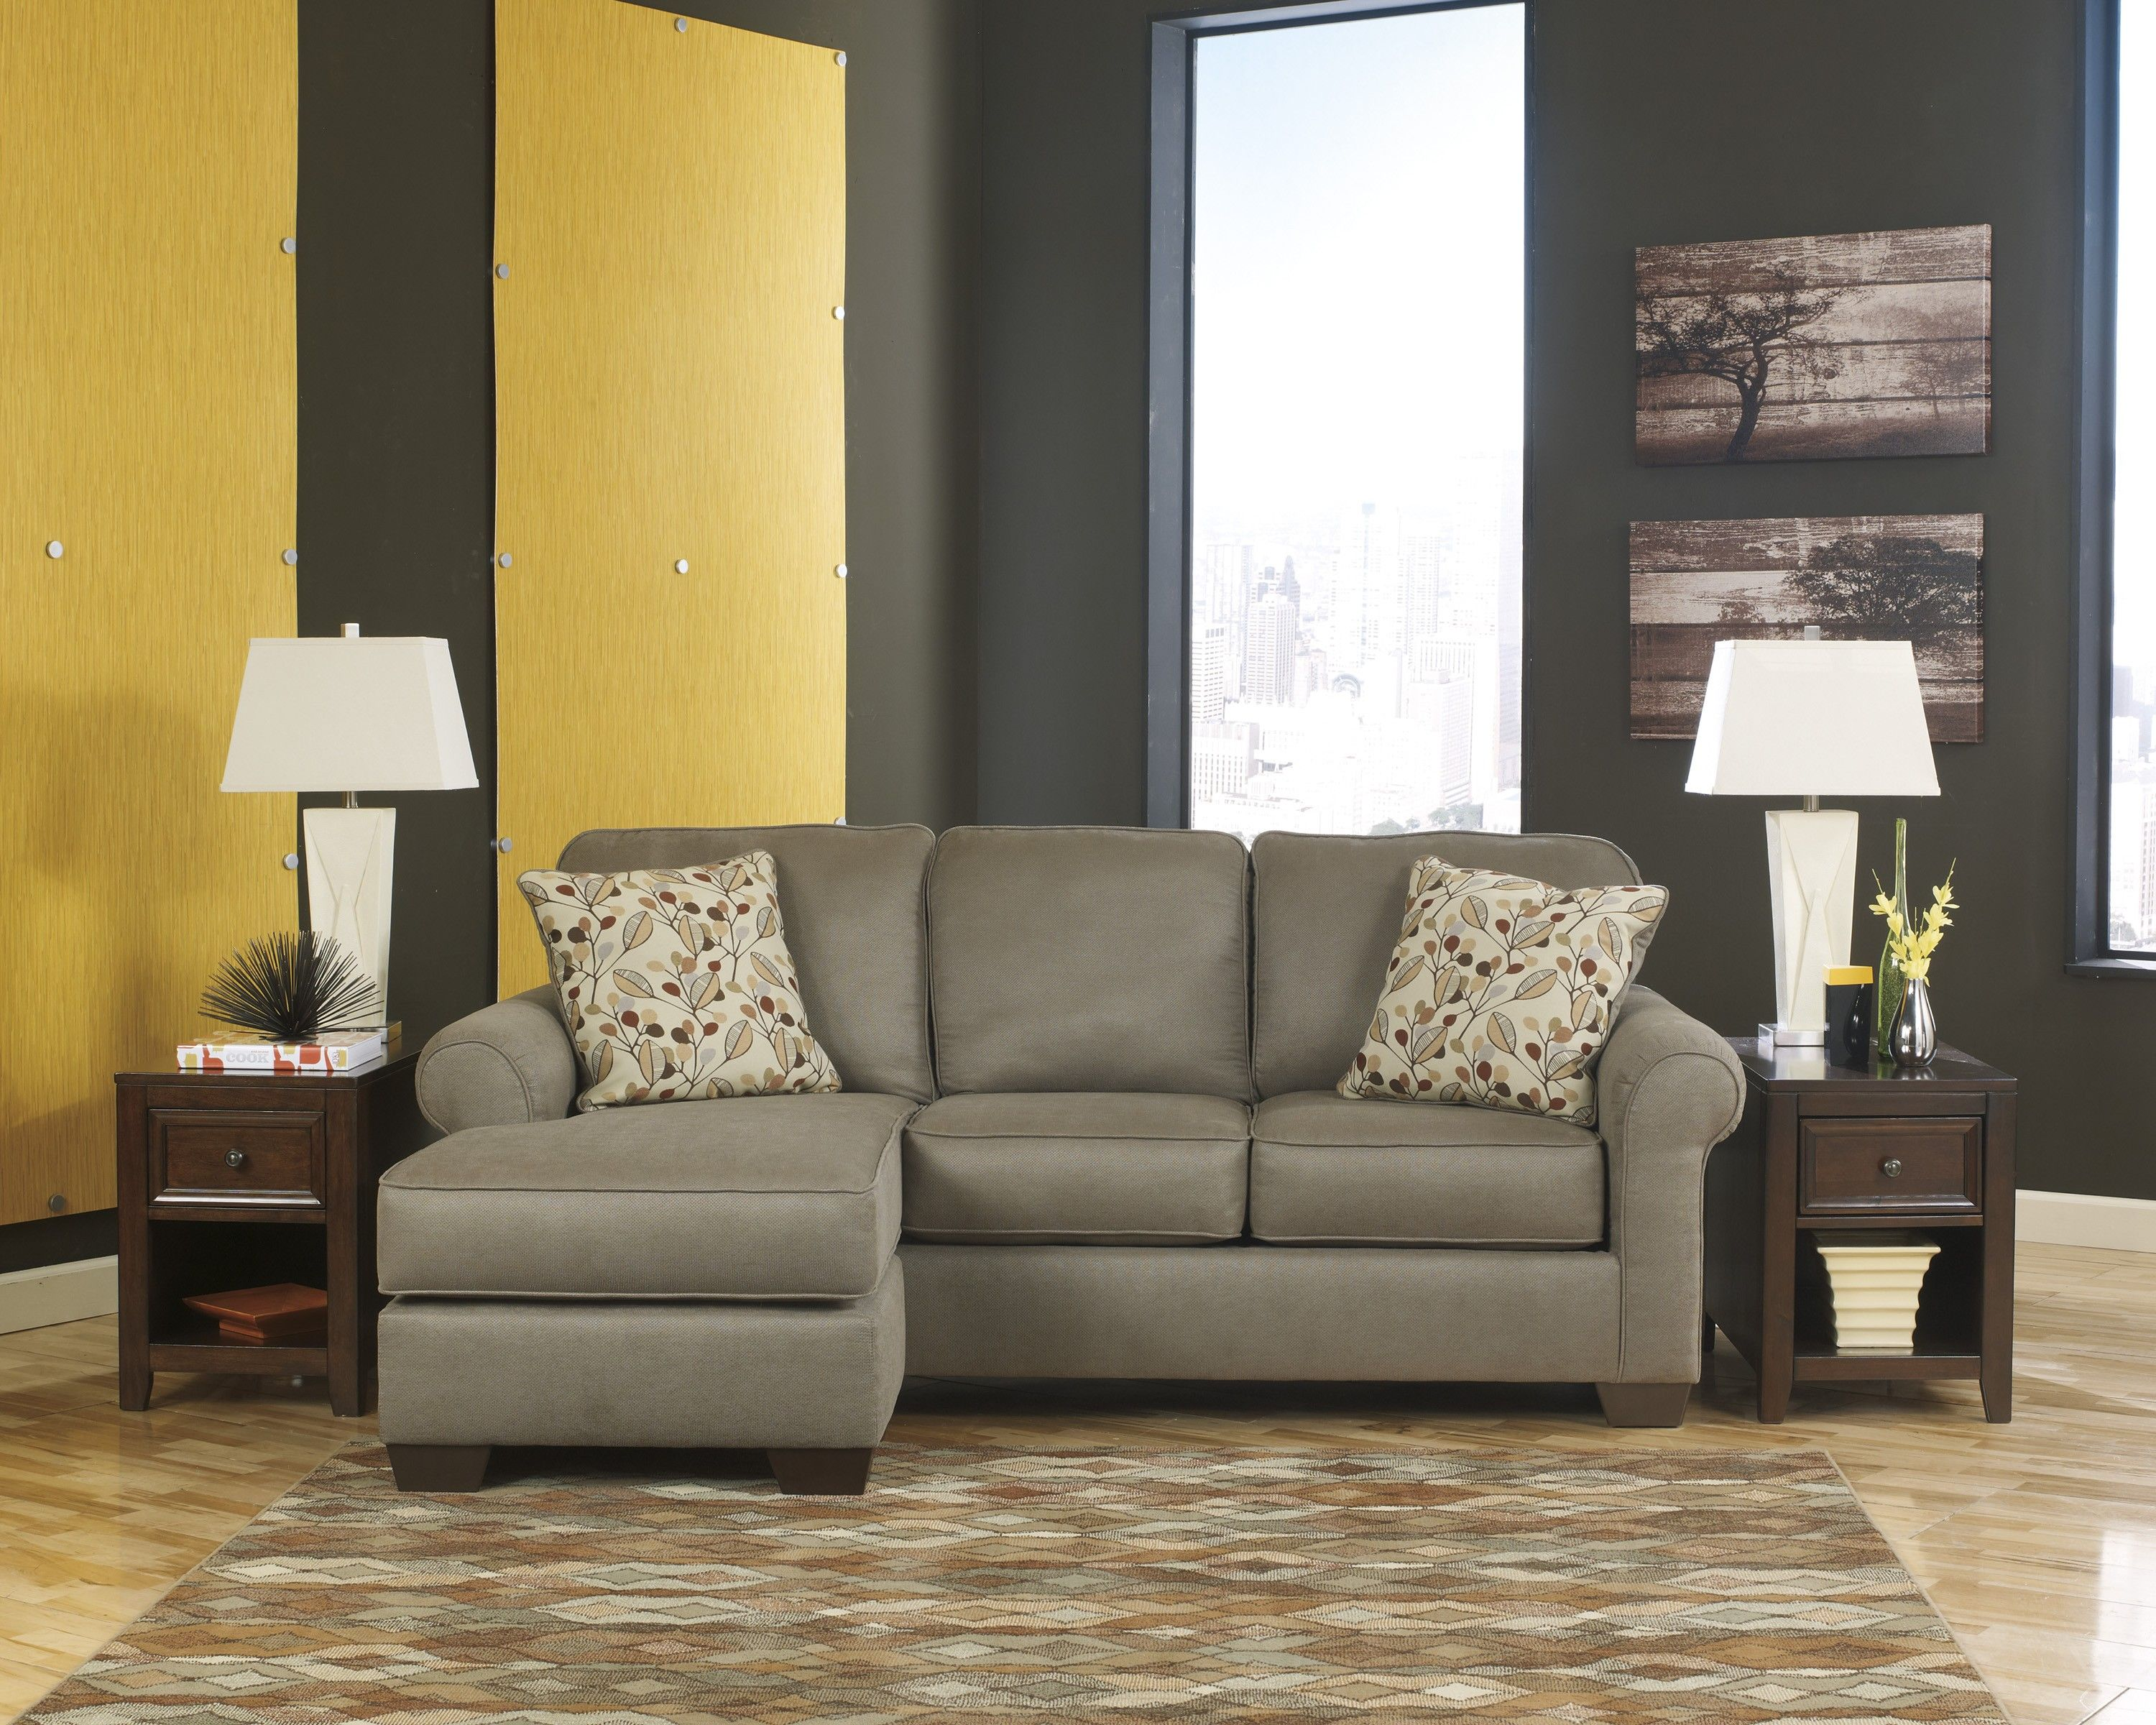 Buy Danely Dusk Sofa Chaise by Benchcraft from